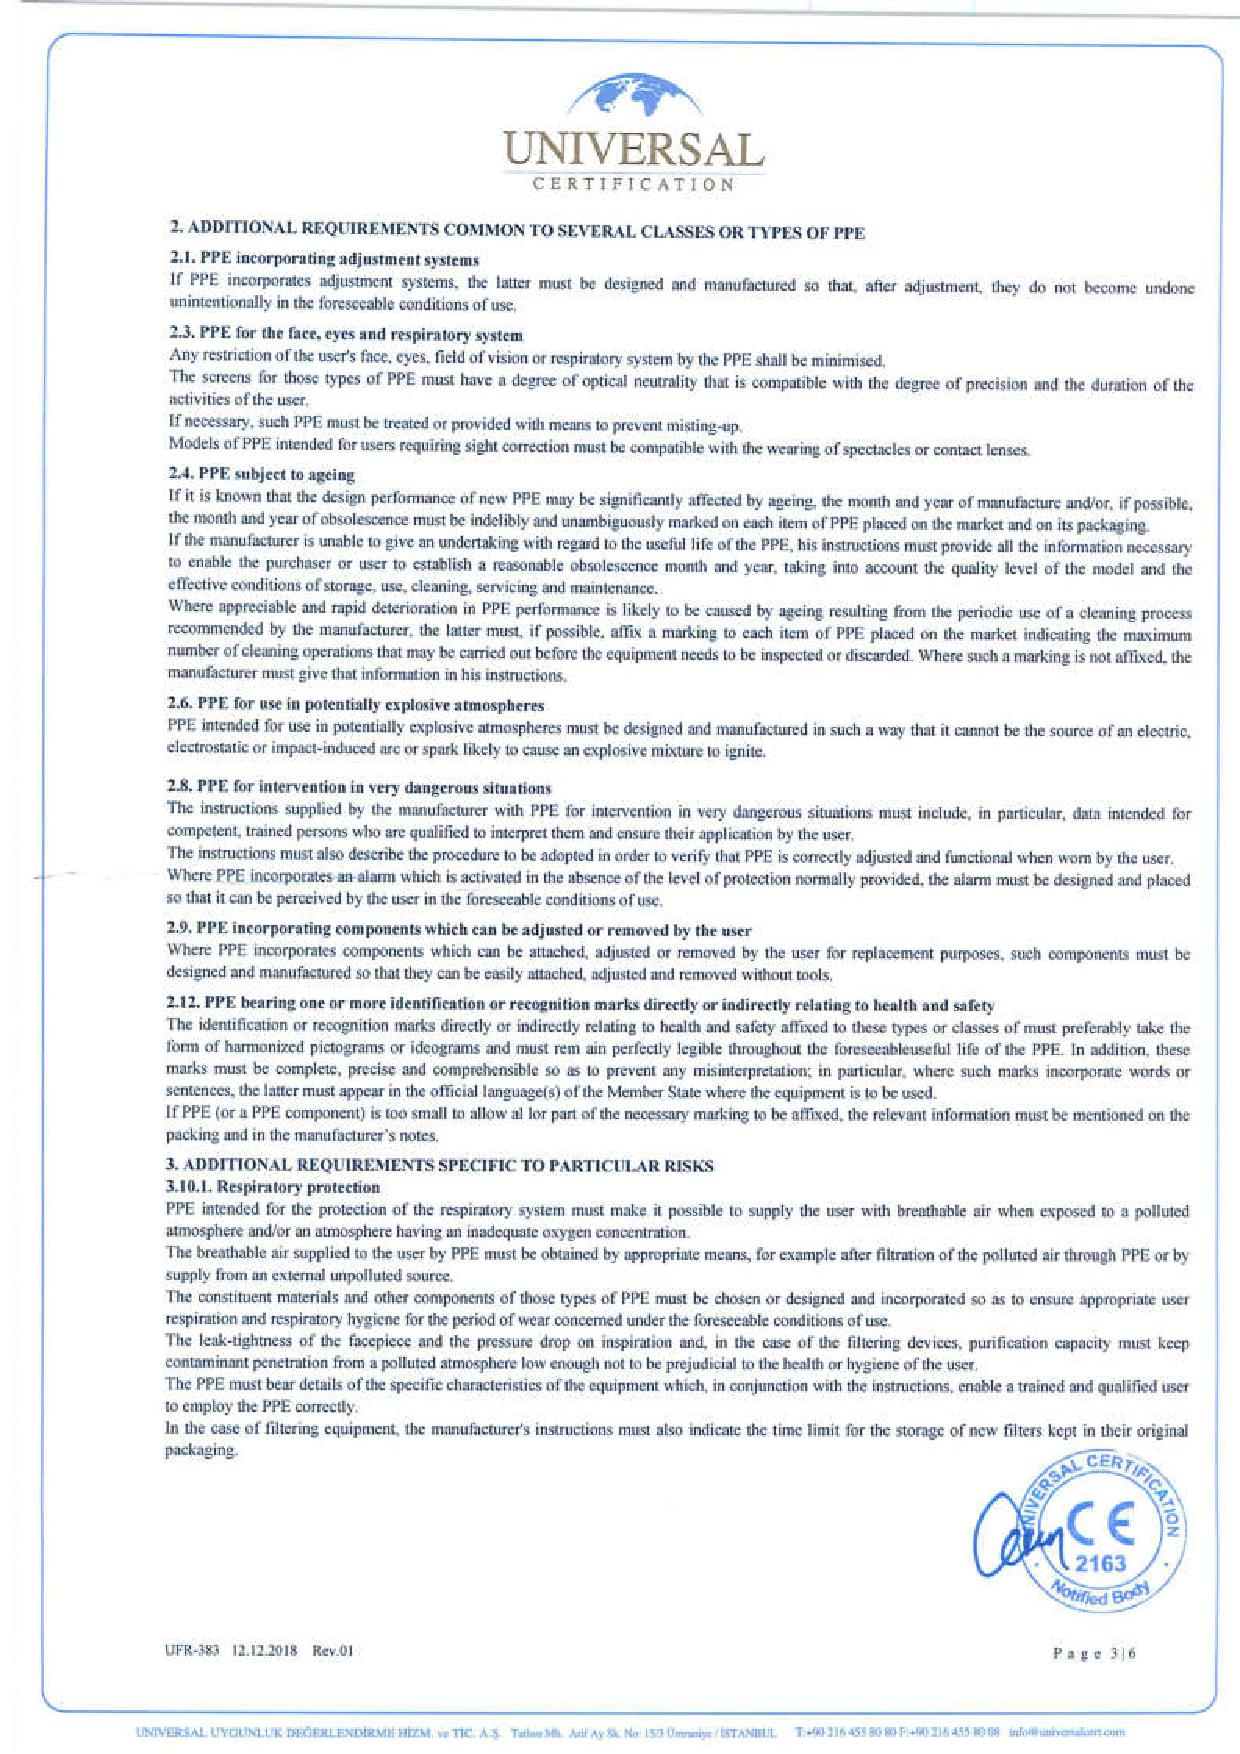 AnDum_NB2163_AD-T001-page-005.jpg